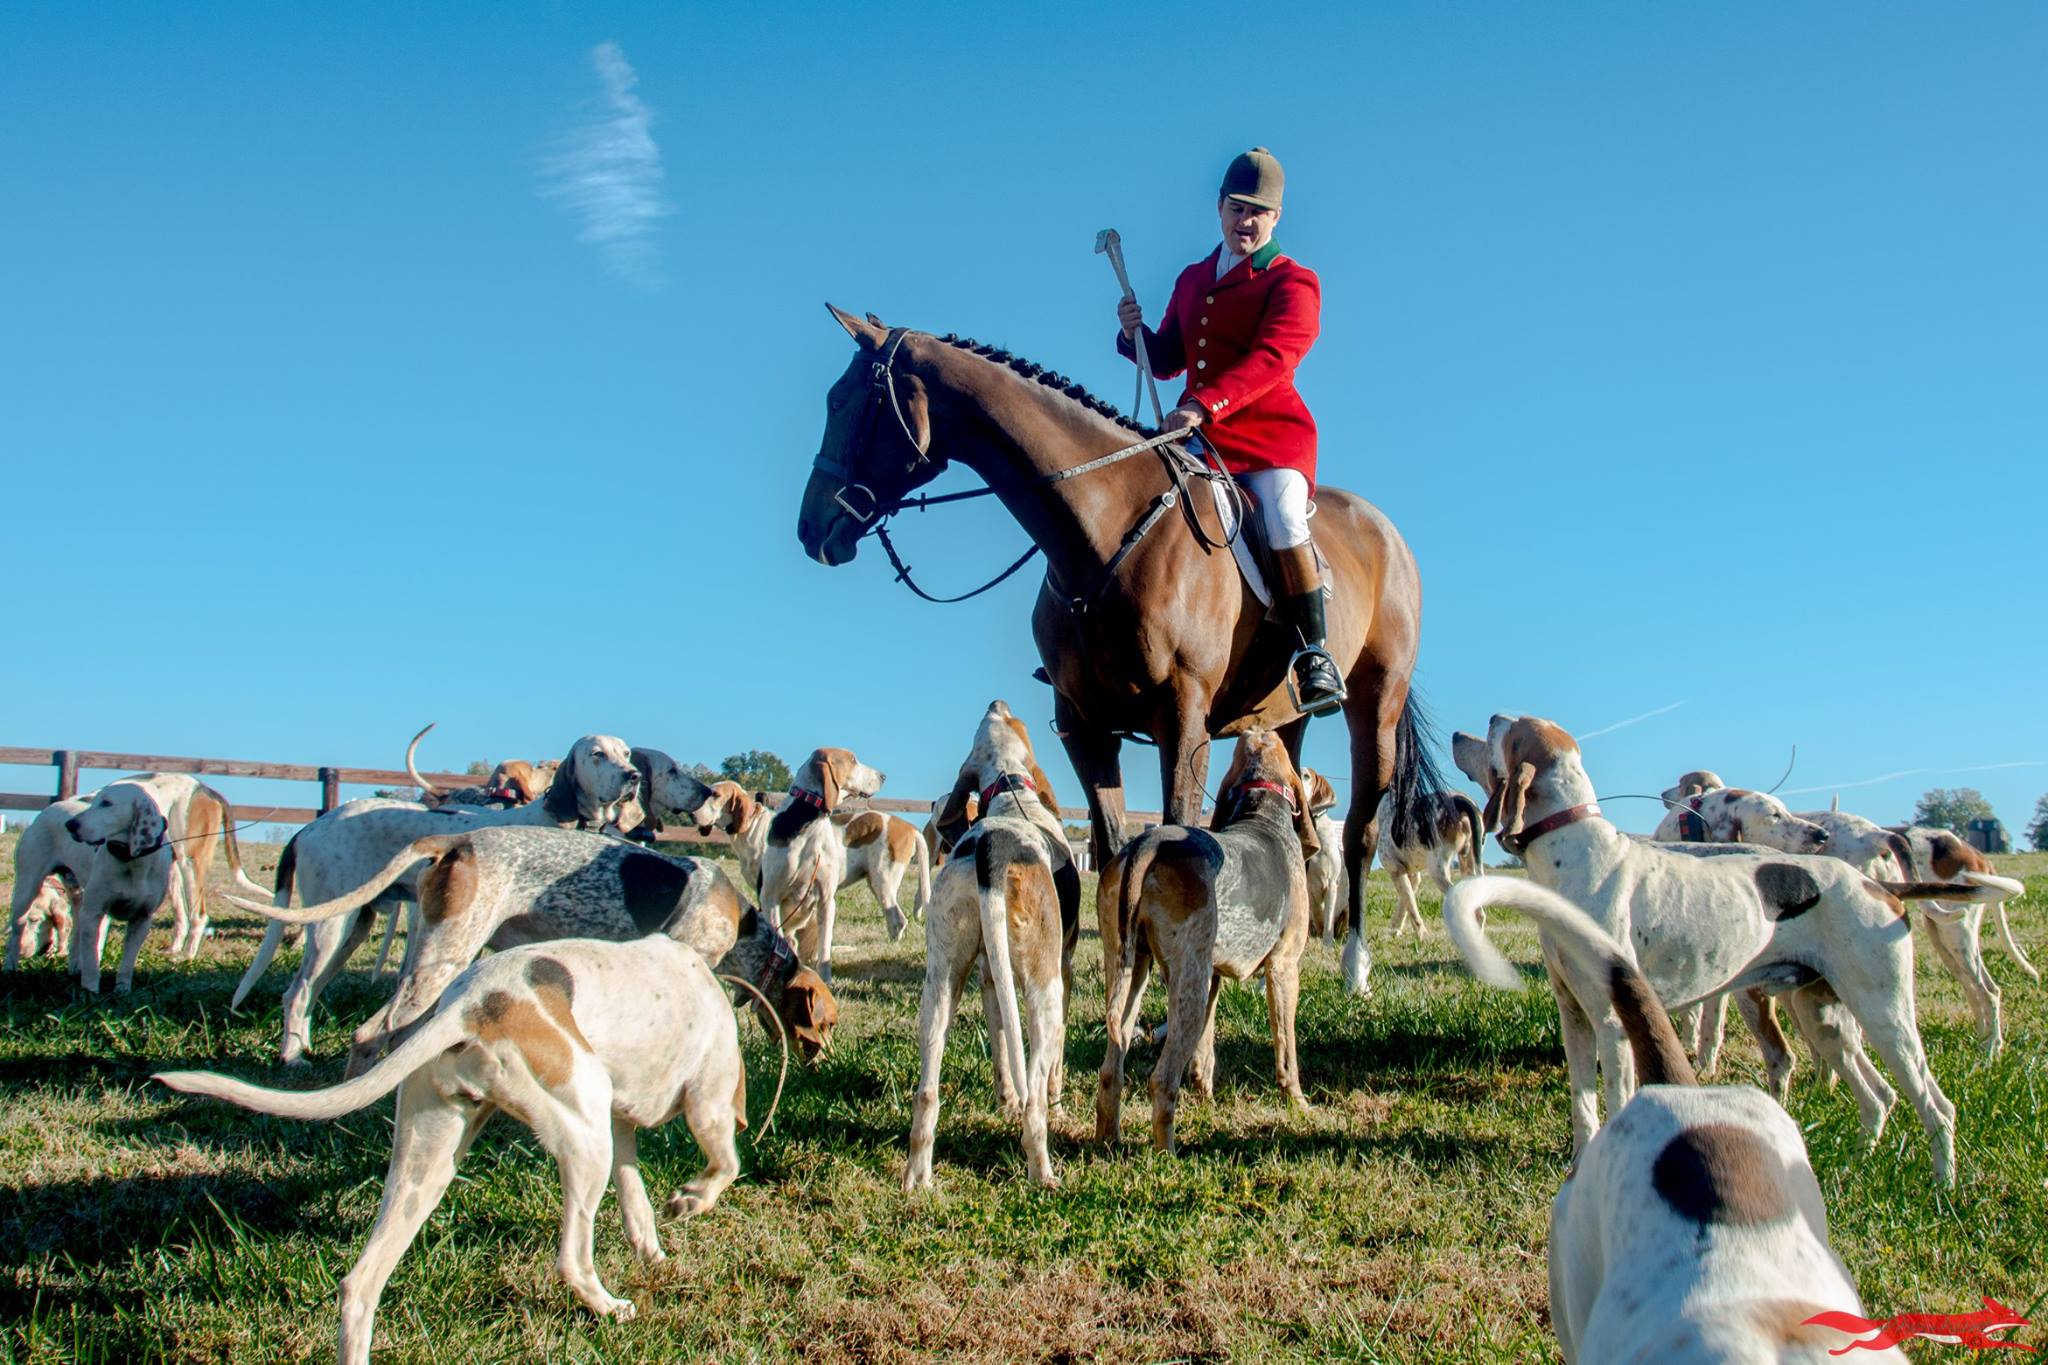 About - Find out more about hunting with our club and about the history of Red Mountain Hounds